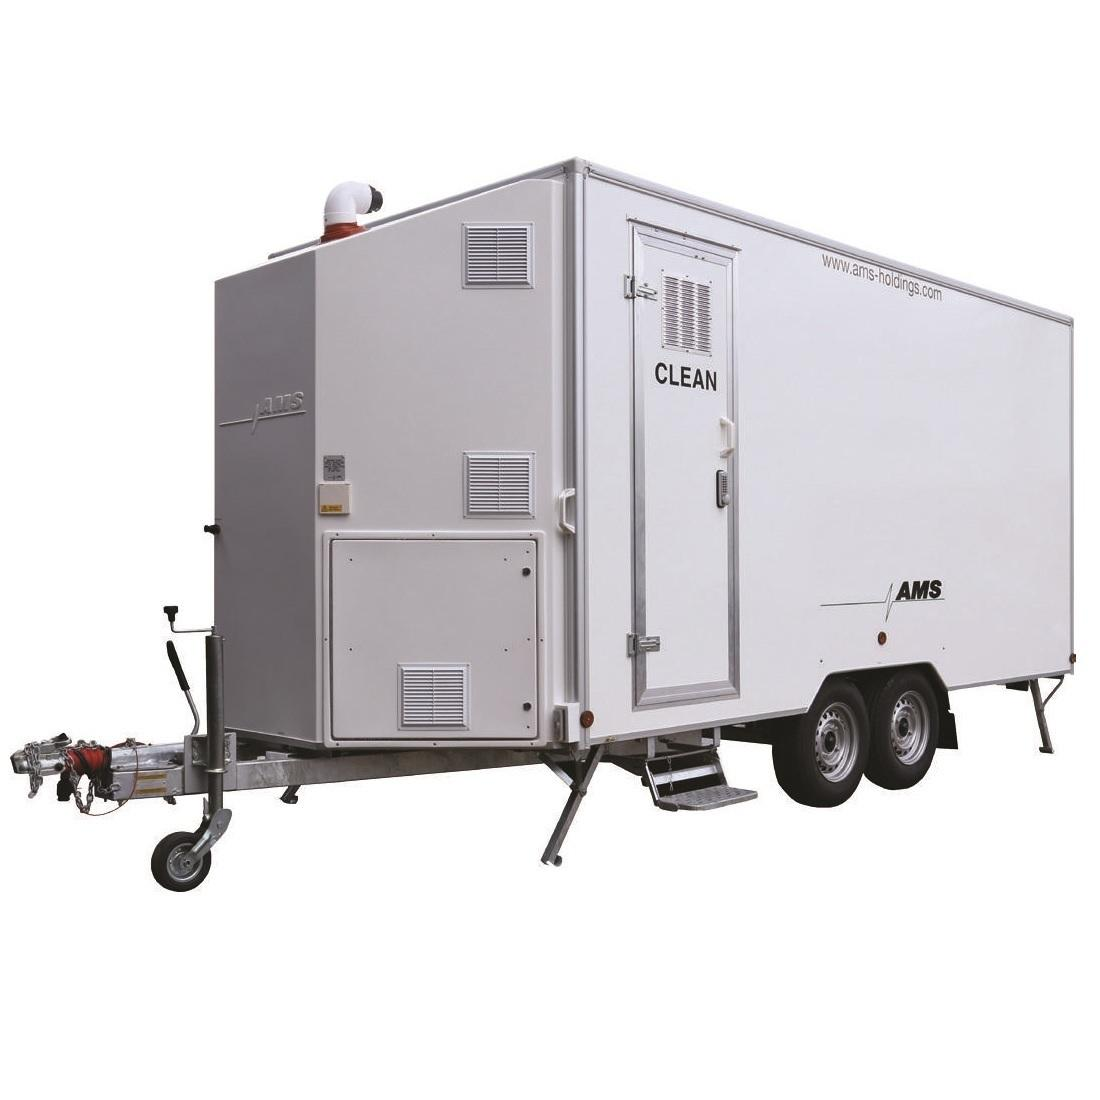 14. Decon Trailer Rental